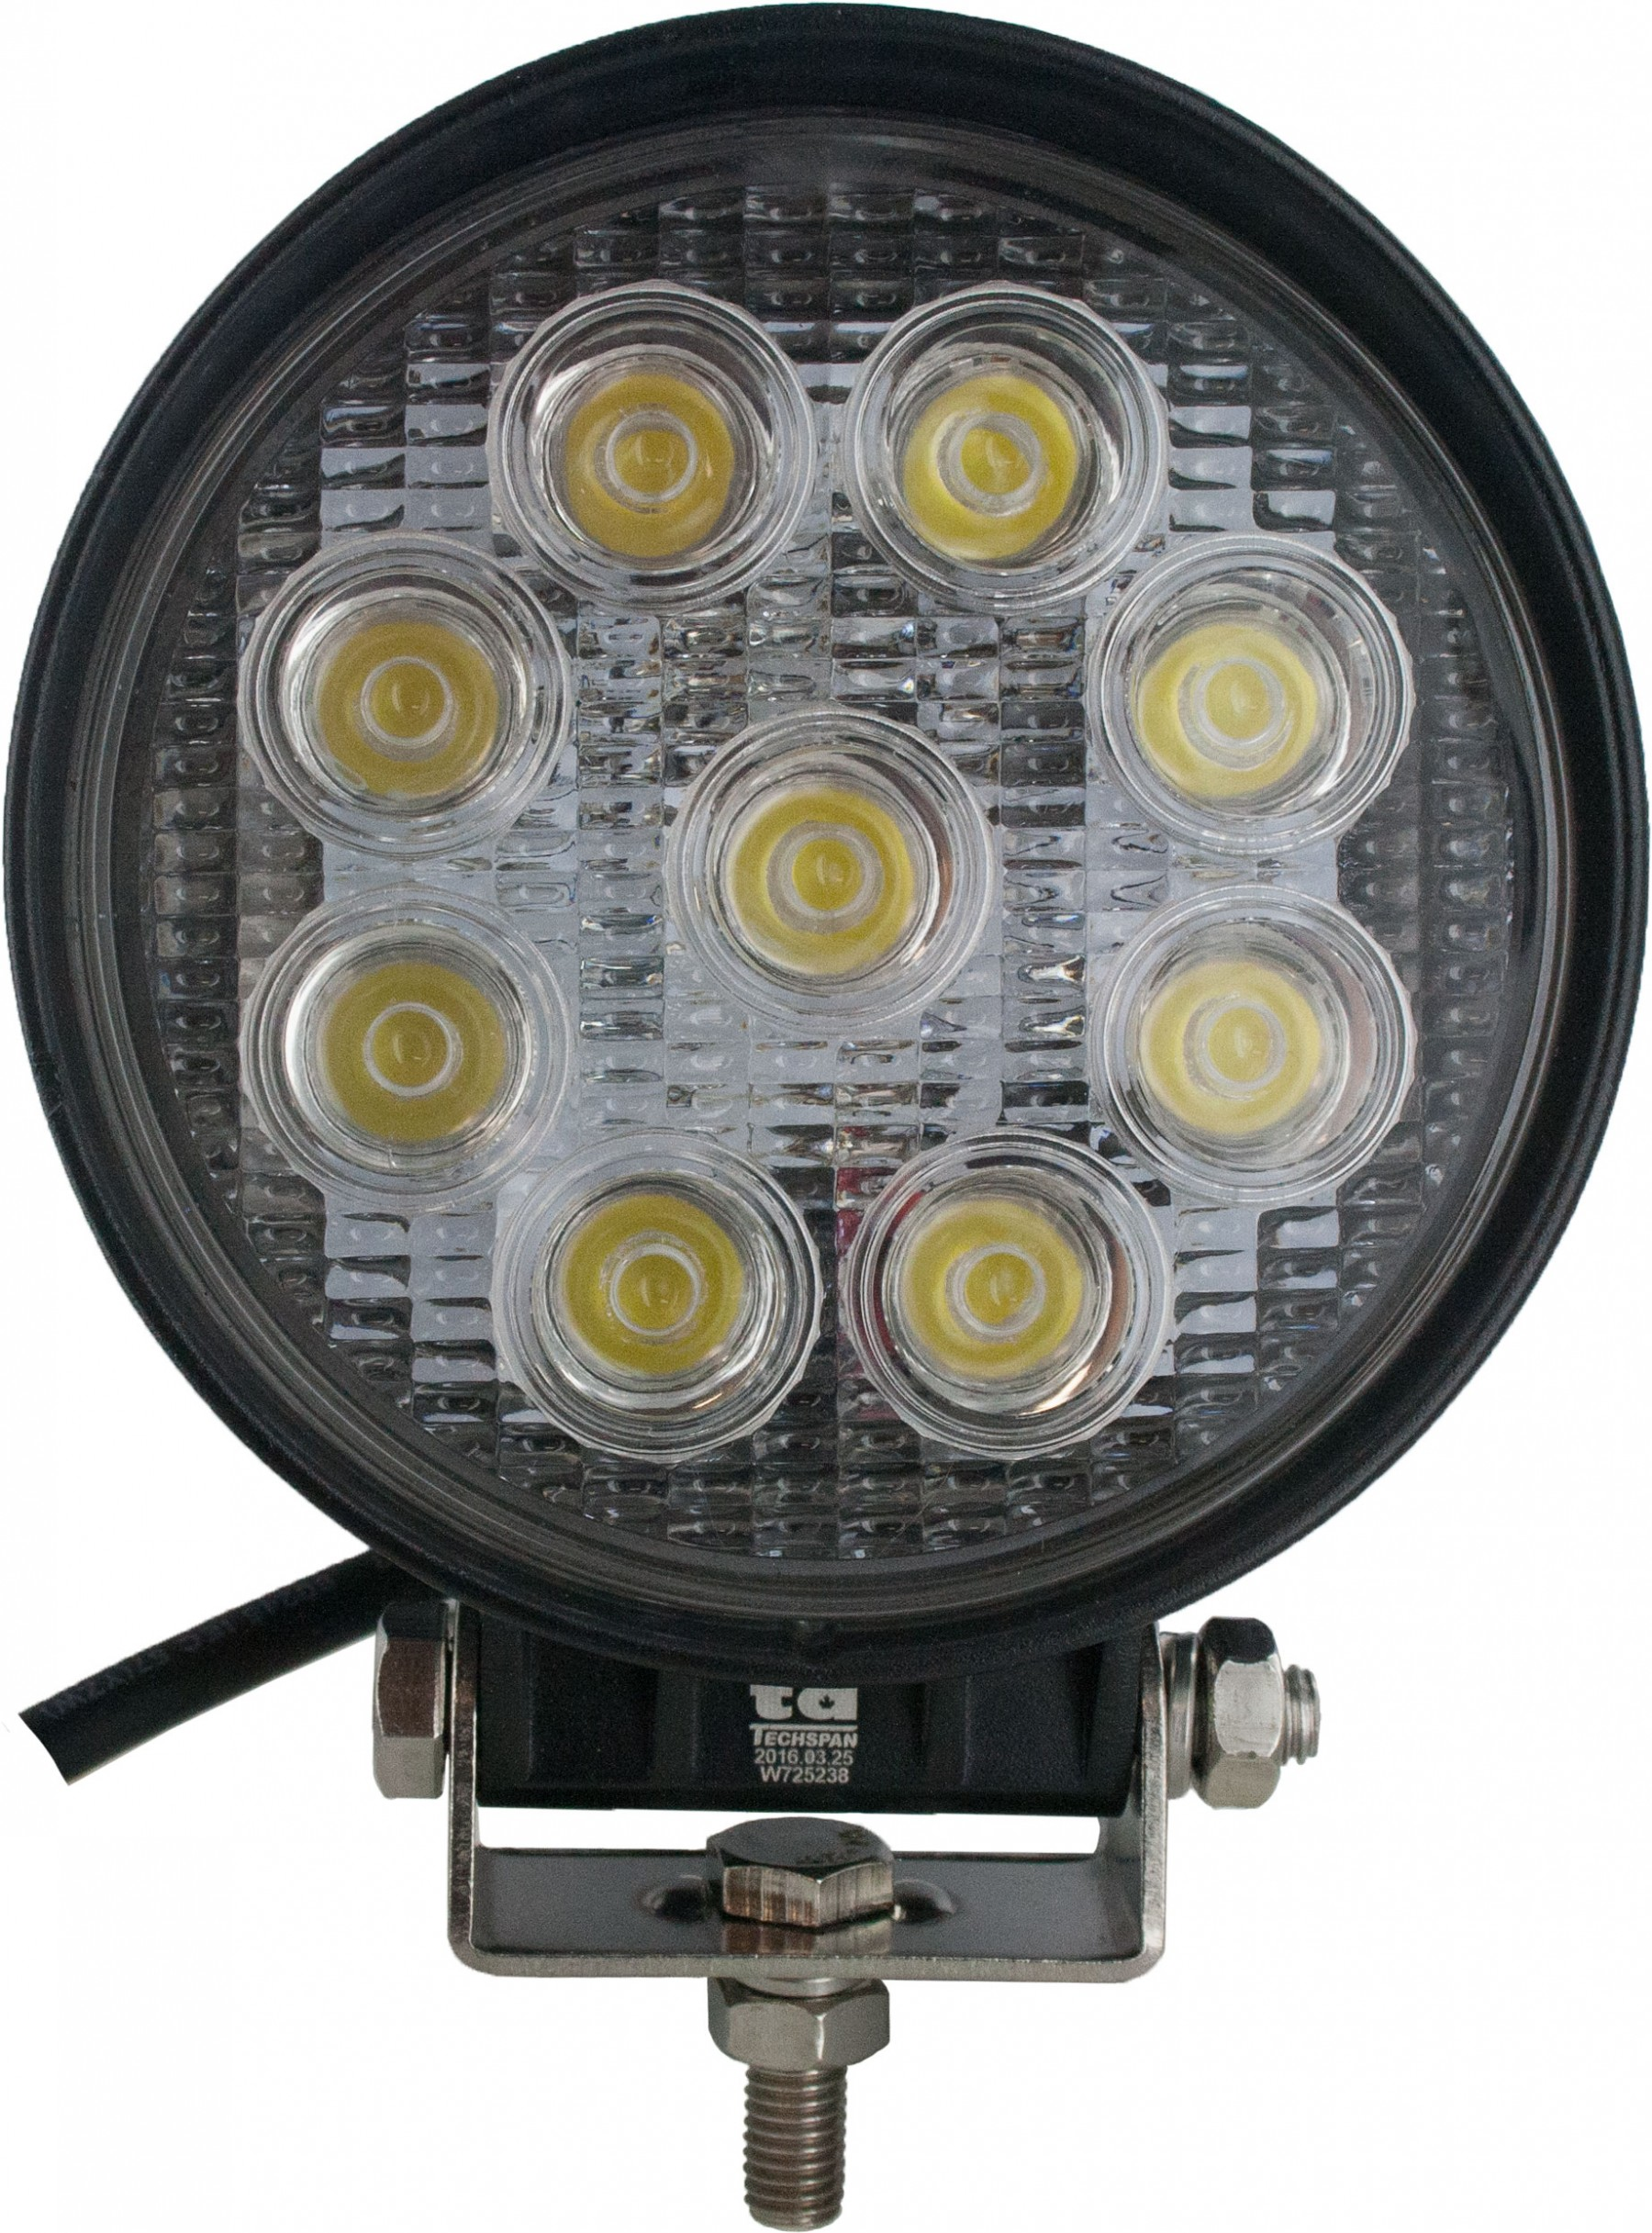 Led Lights For Utility Tractors : Round tractor utility lamp led lumens watts